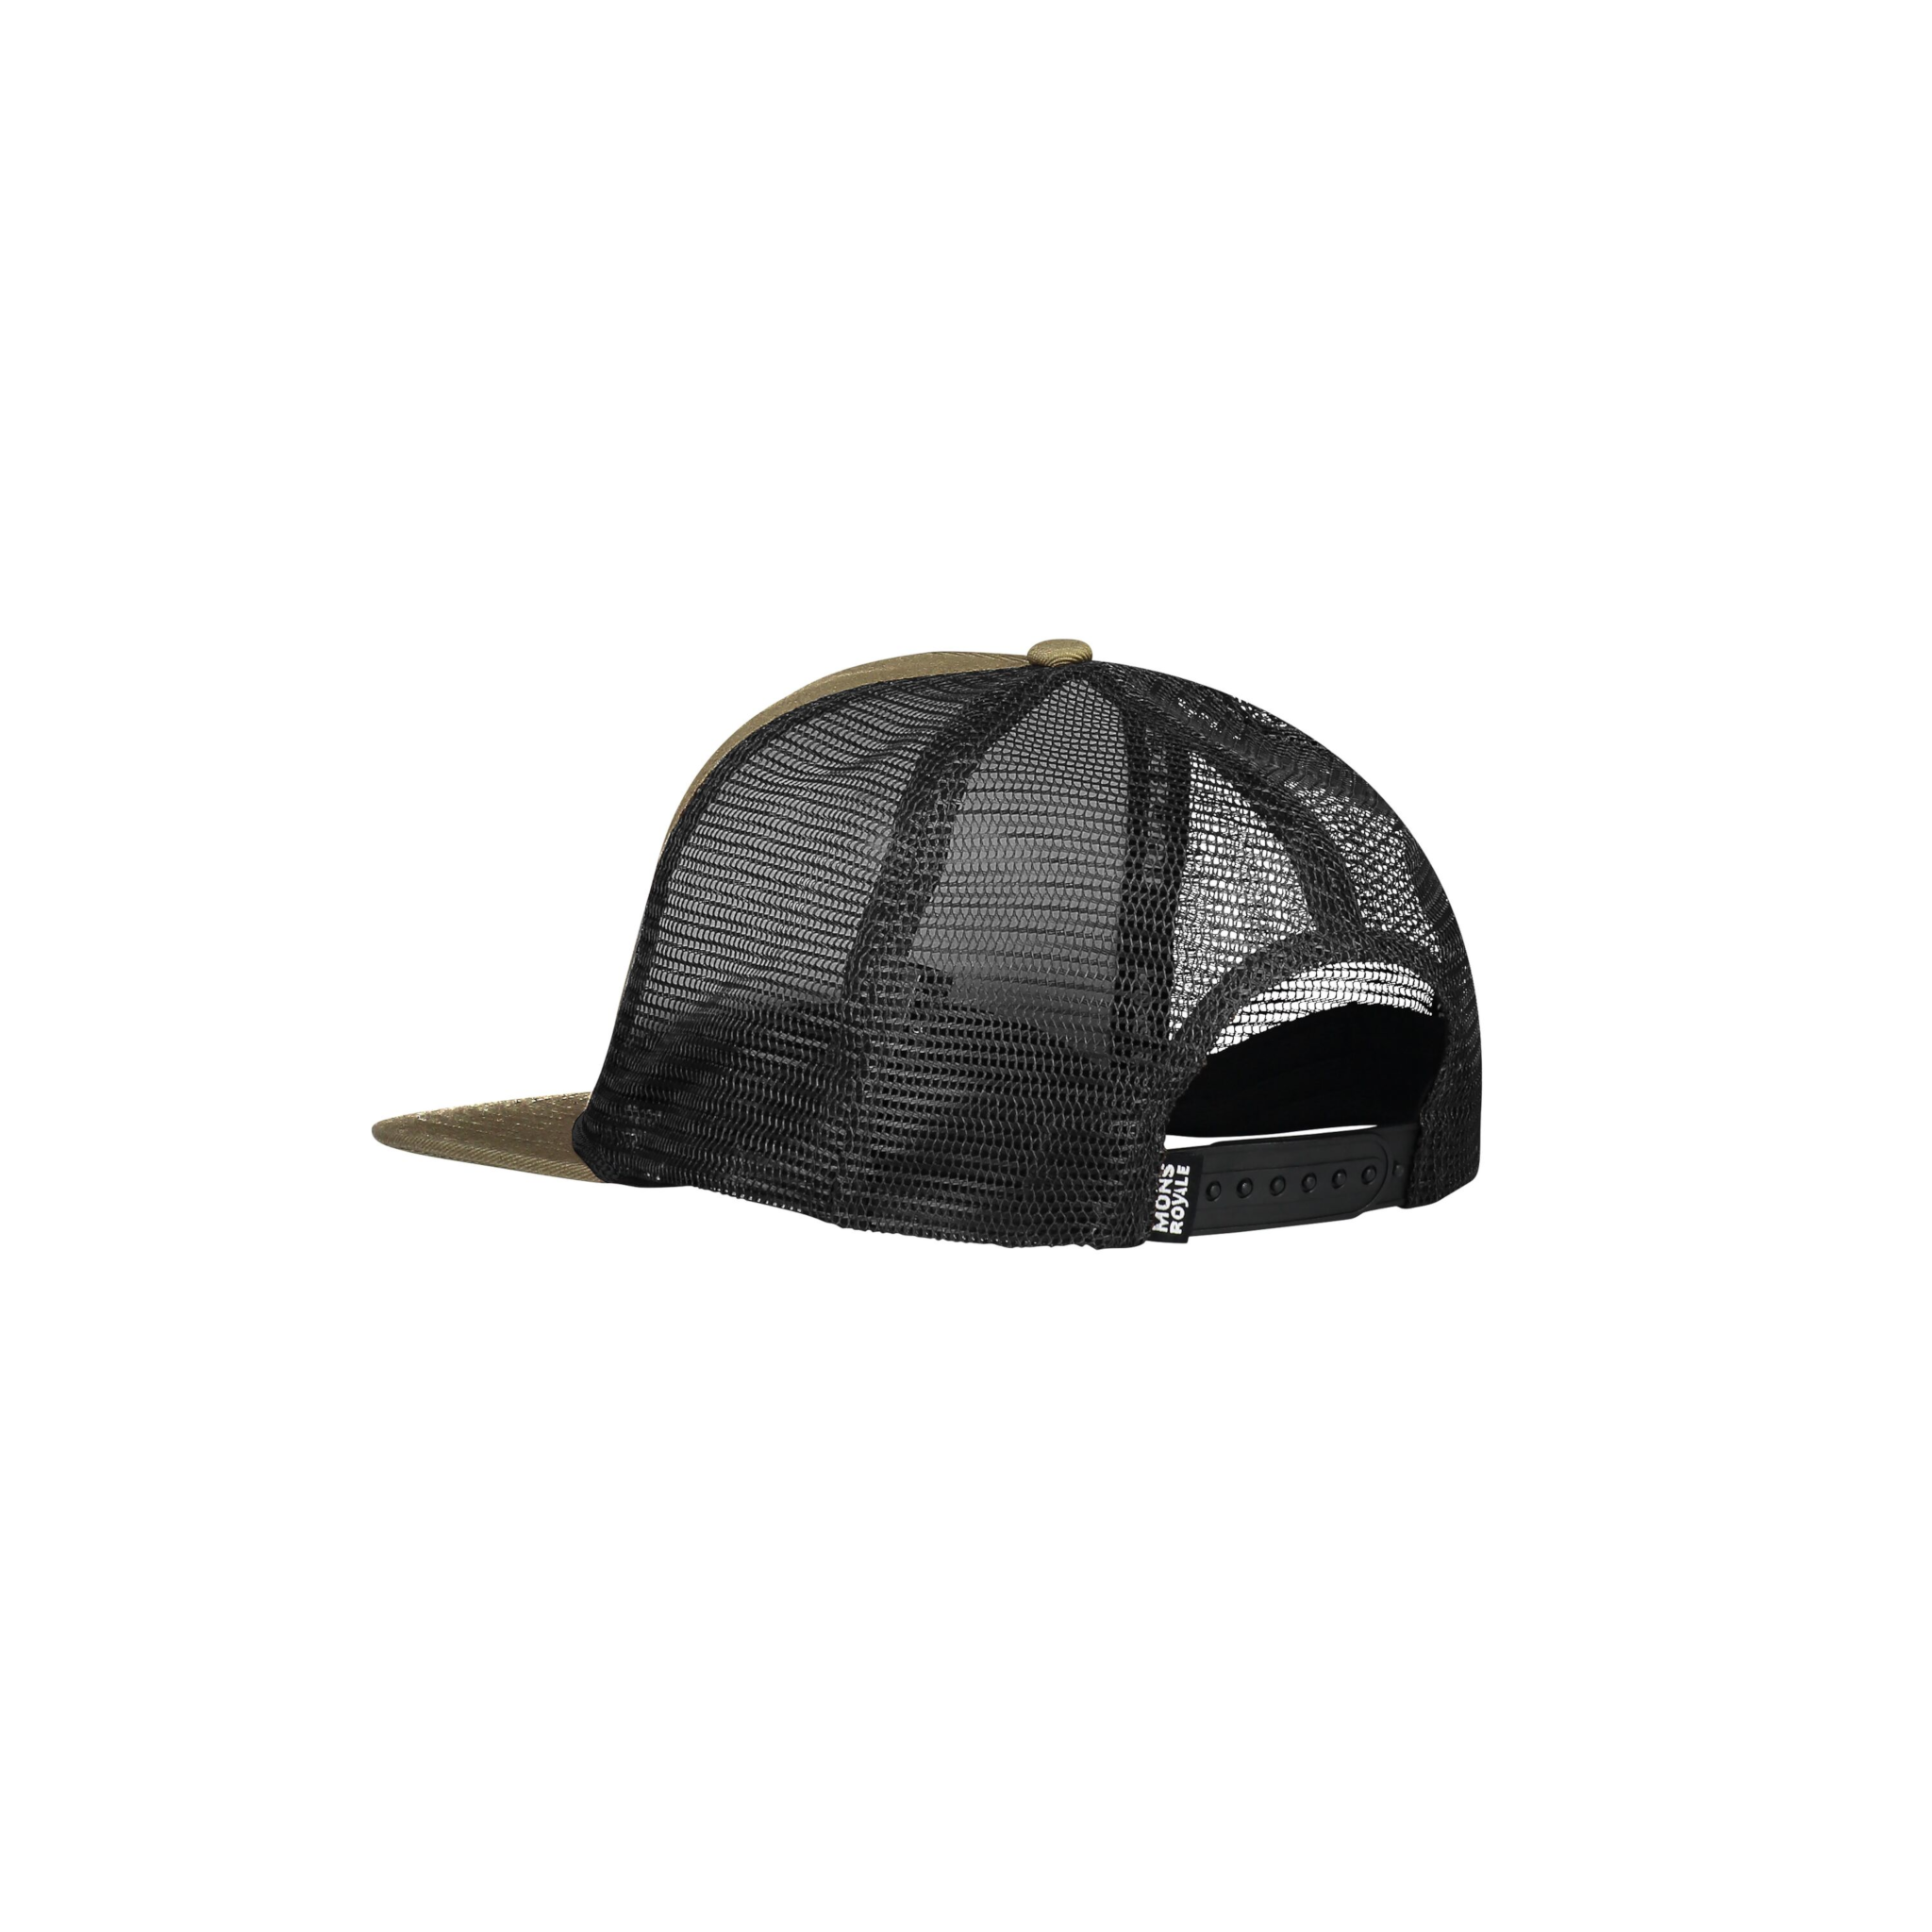 ACL Trucker Cap